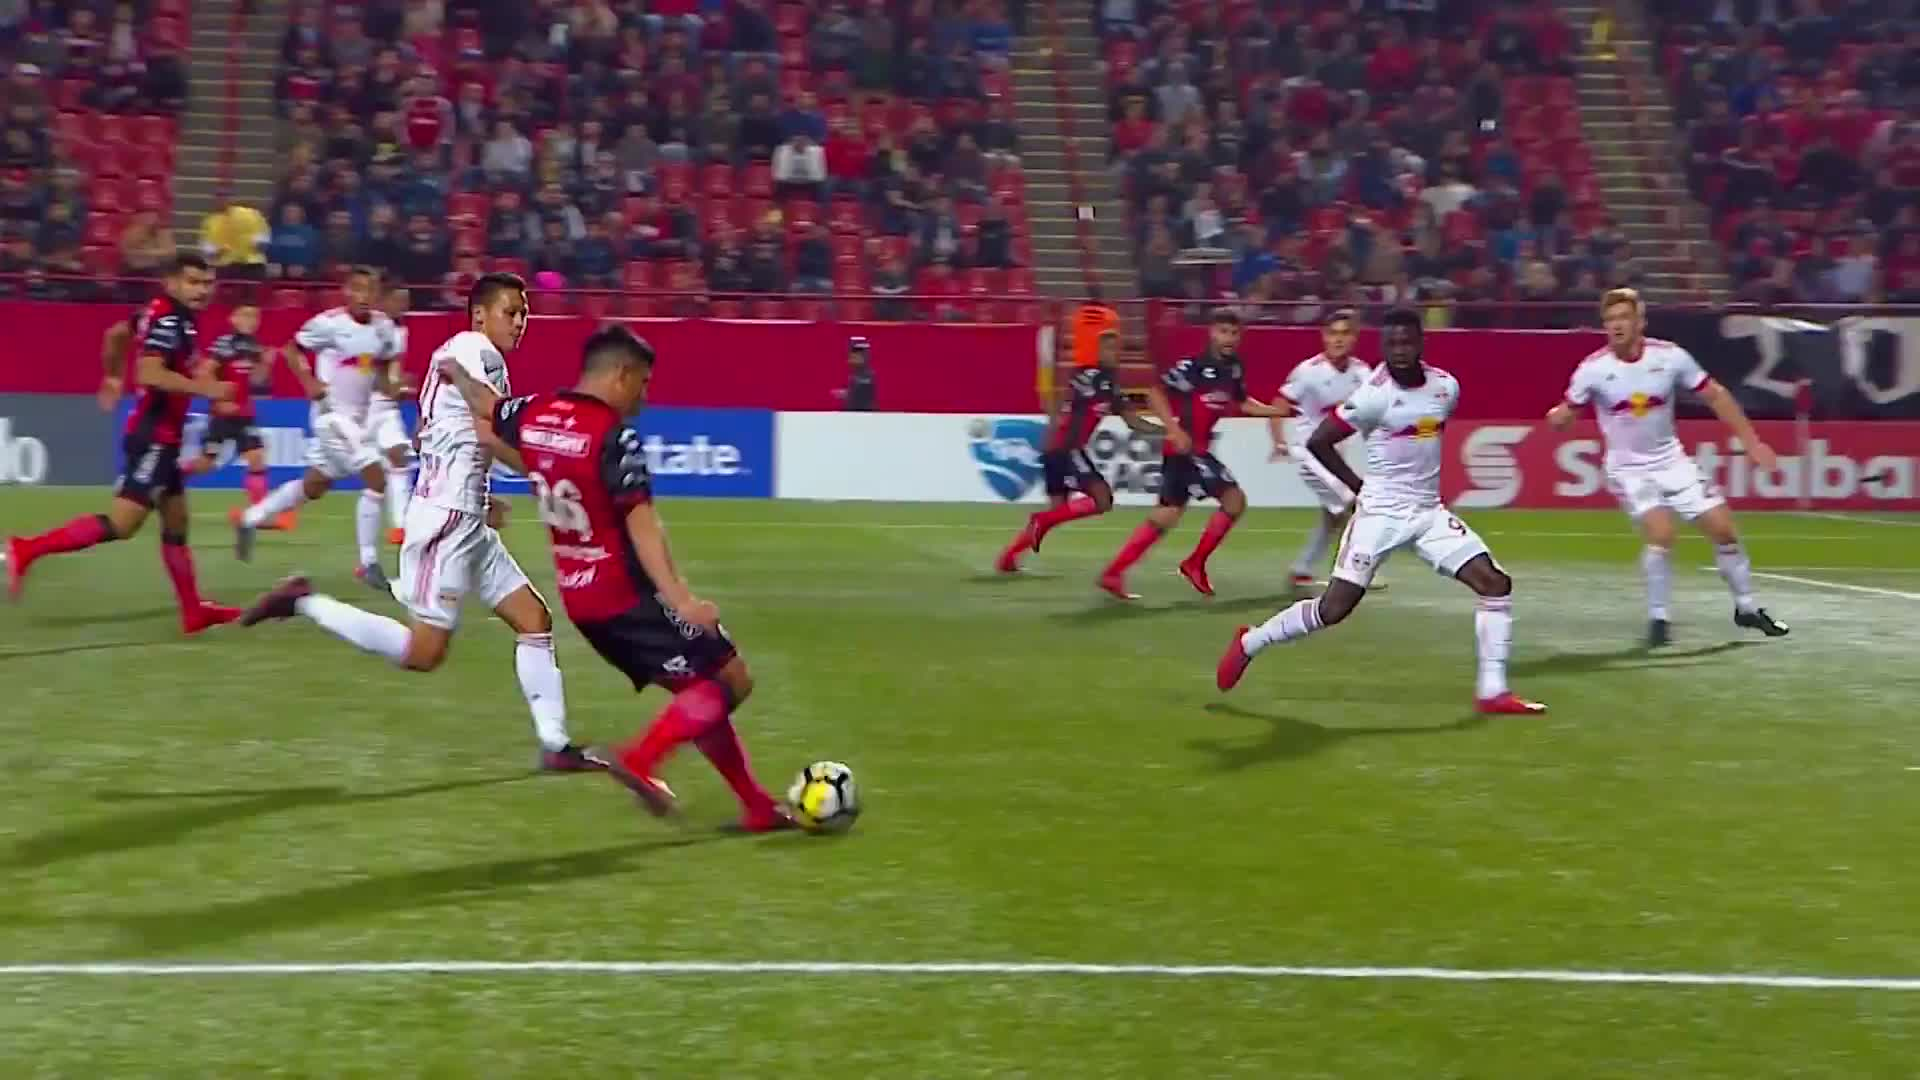 CONCACAF, SCCL 2018: Tijuana vs New York Red Bulls Highlights GIFs